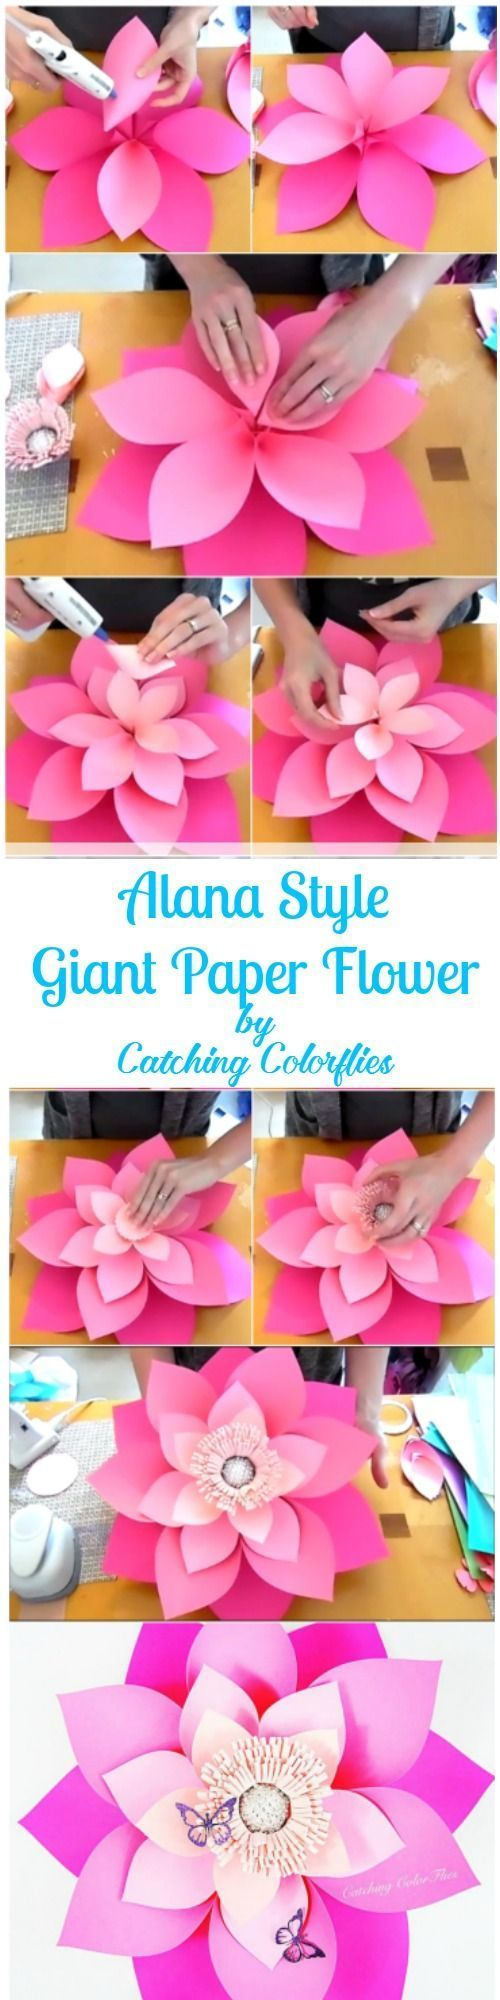 Alana Style Giant Flower Templates Template Tutorials And Flower